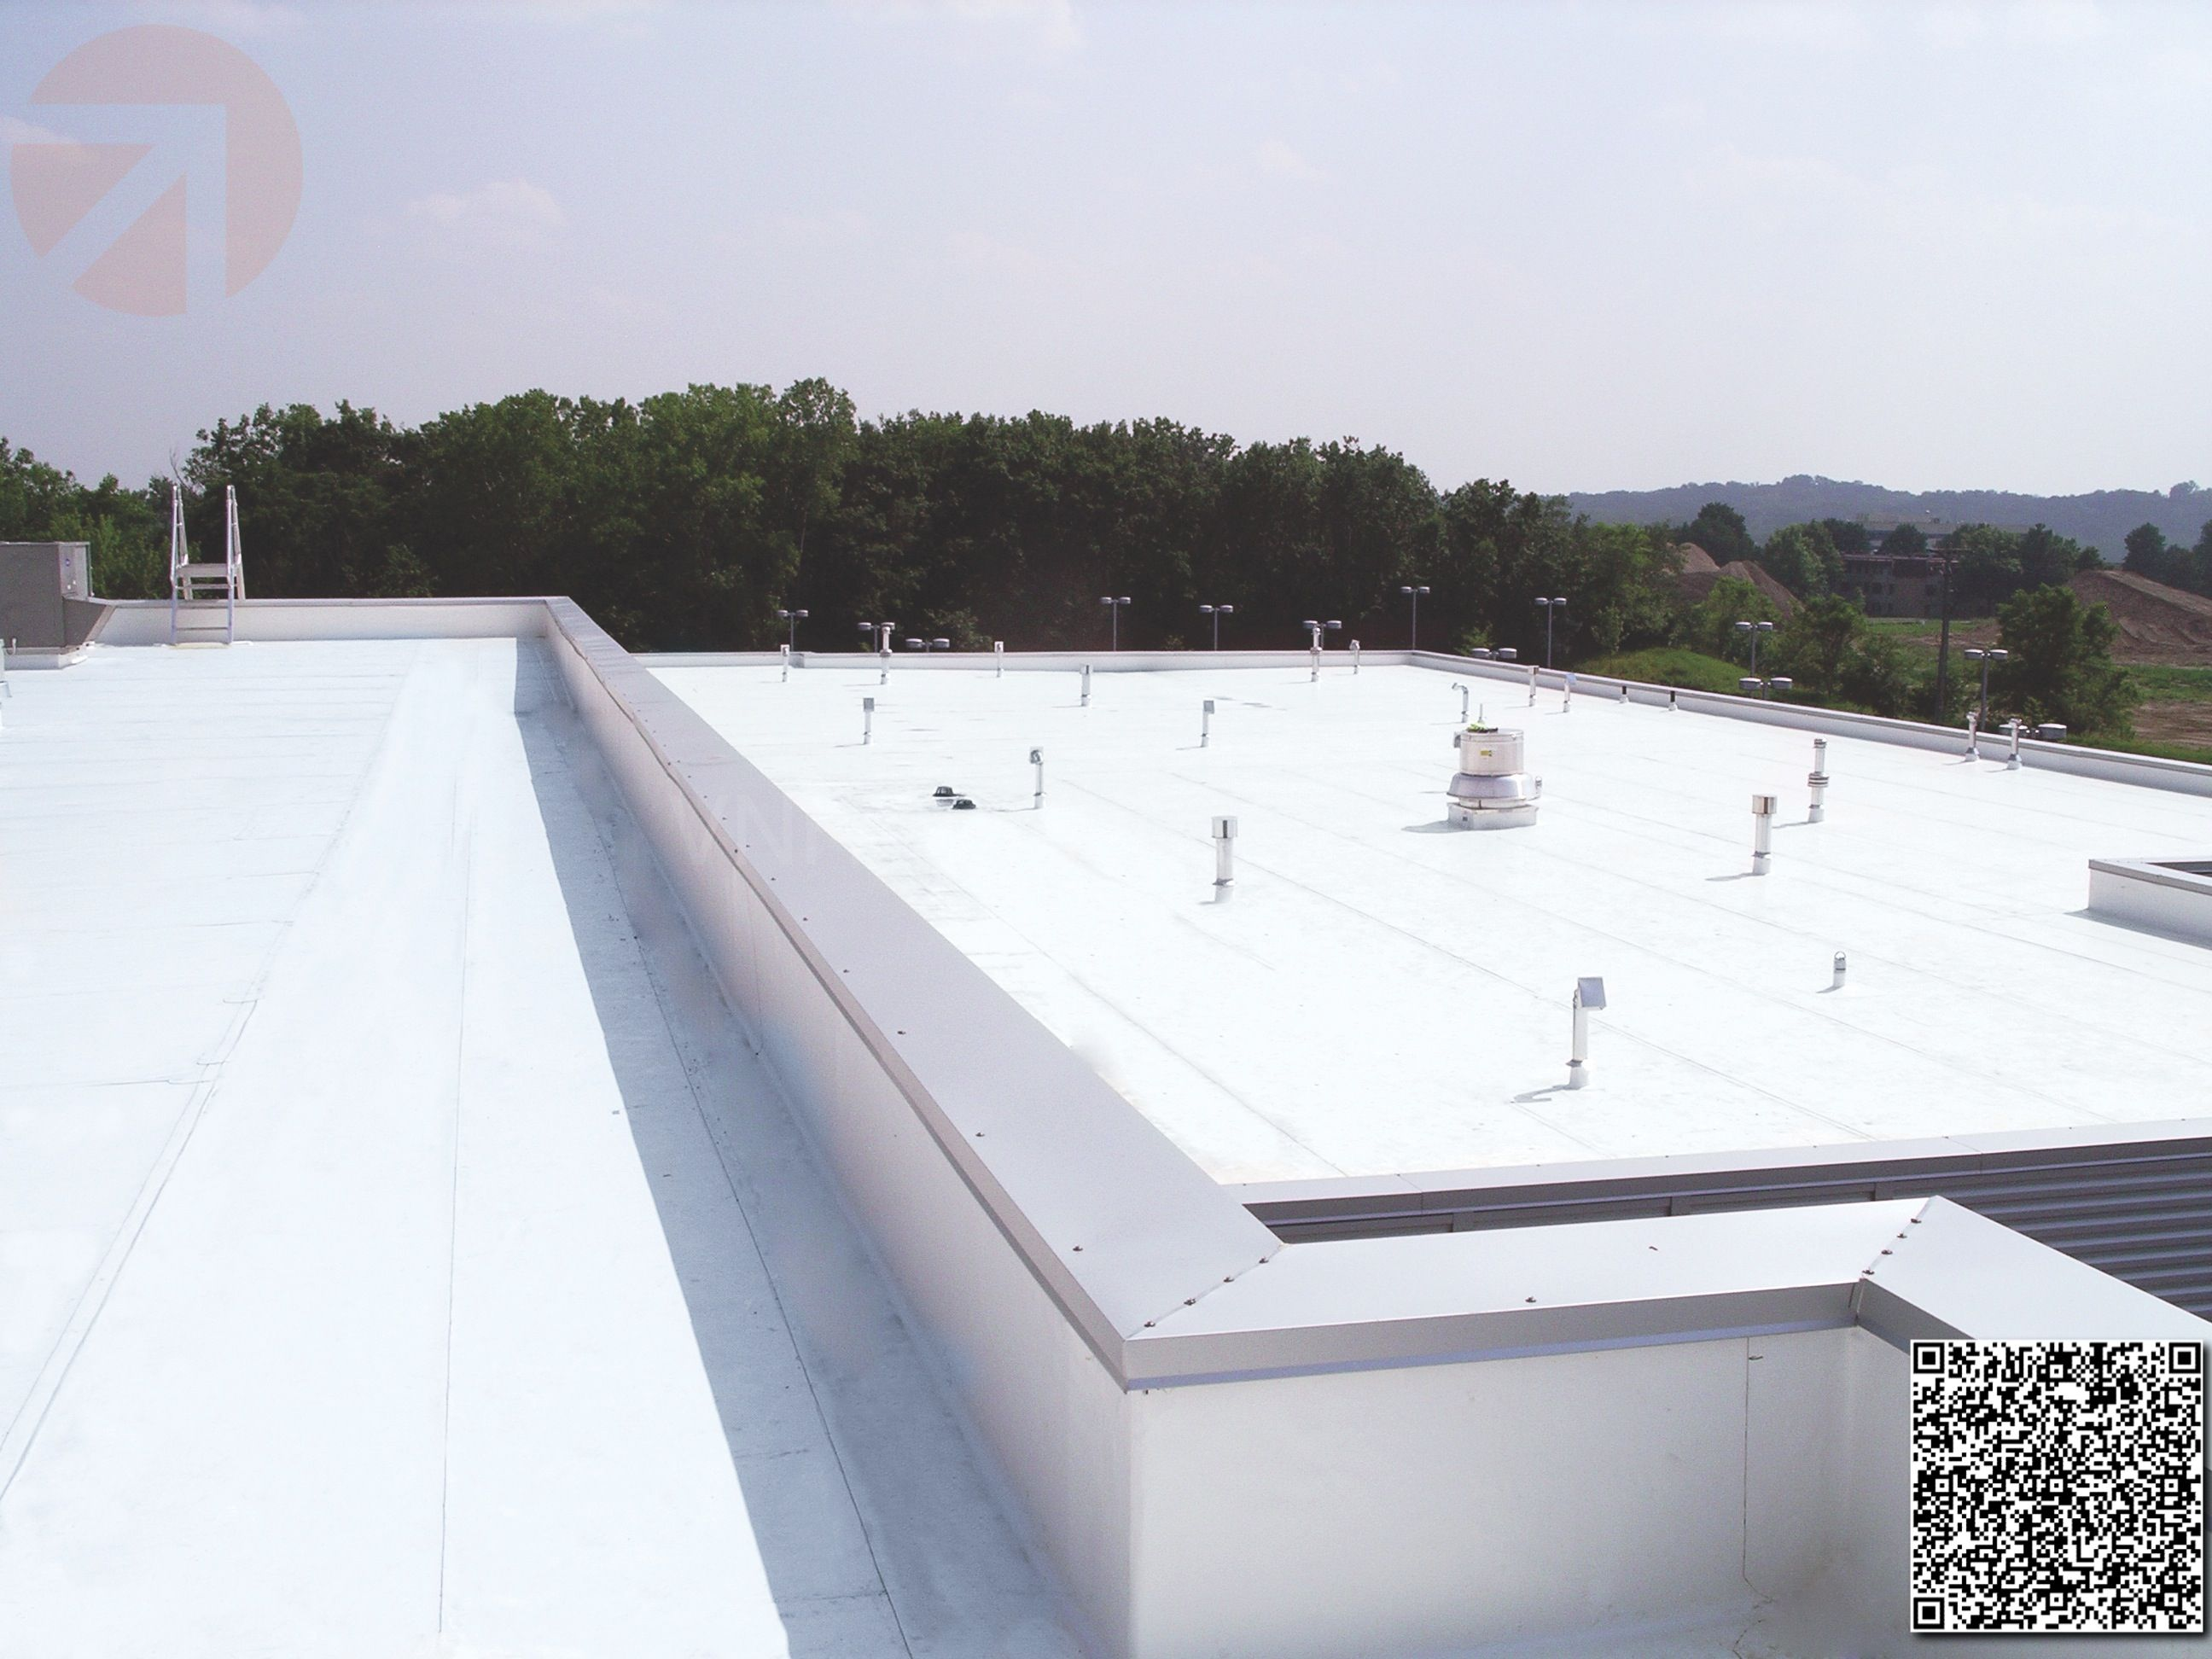 Elastomeric Foam Membrane White Roof Products And Installation Photos Roof Repair Roofing Systems Roofing